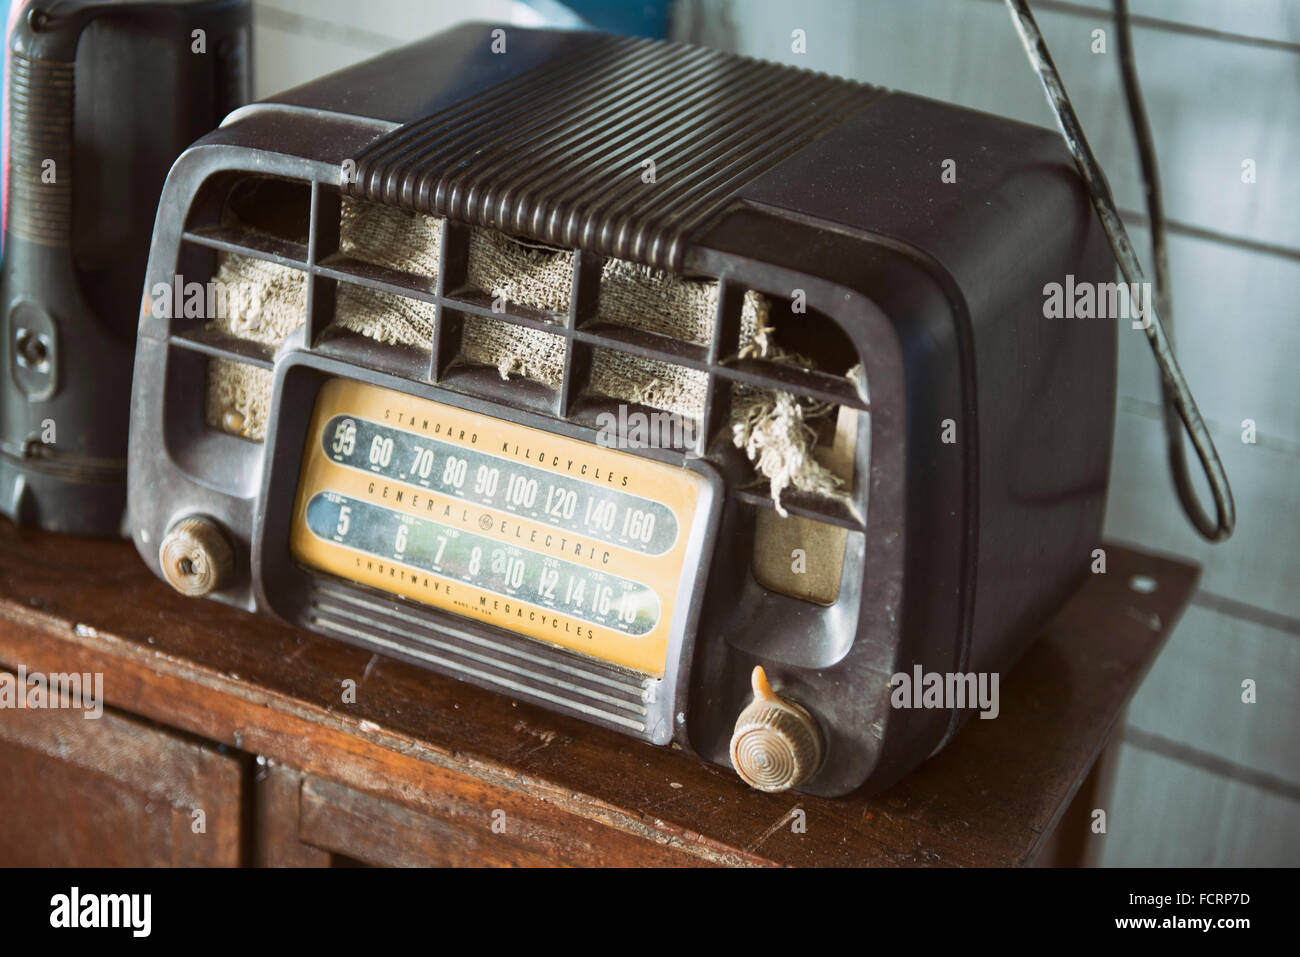 Old Wireless, Radio Shortwave, General Electric, GE - Stock Image